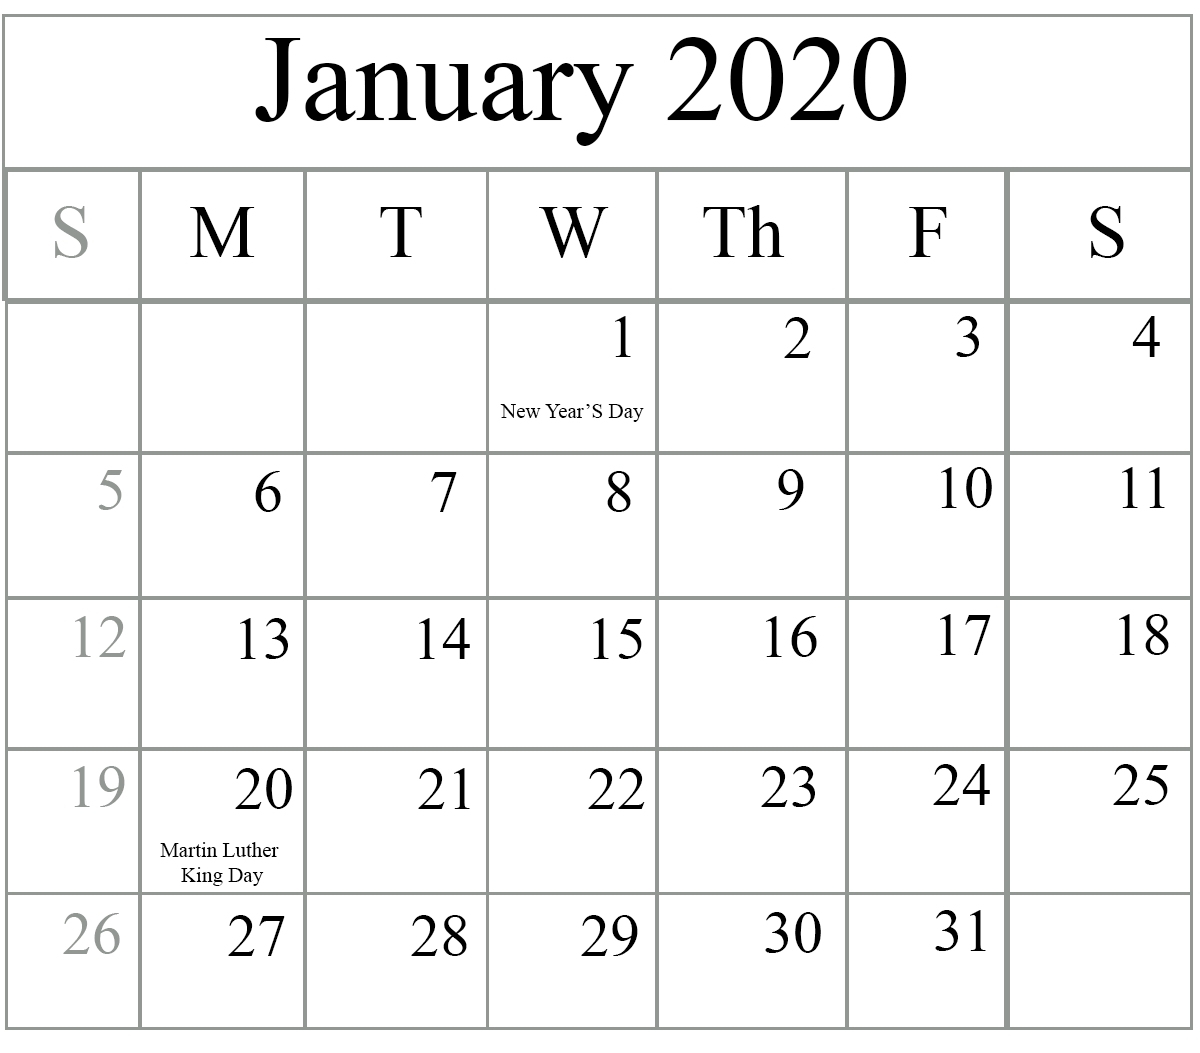 Free January 2020 Printable Calendar In Pdf, Excel & Word-Printable Calendar For January 2020